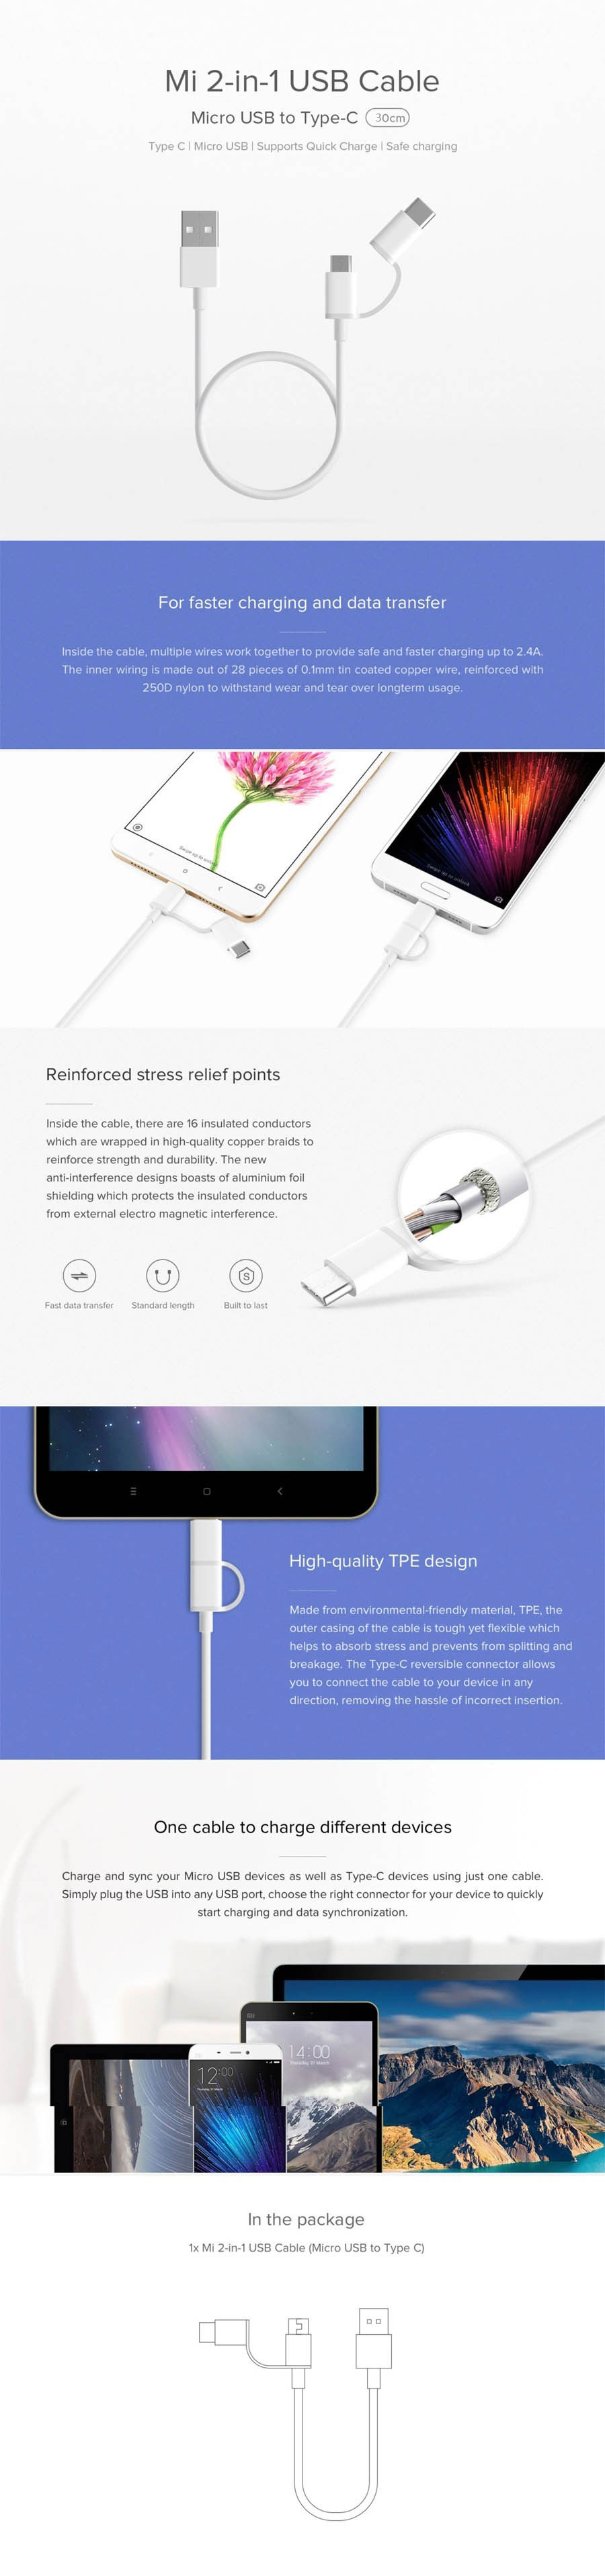 Mi 2-in-1 USB Cable 30CM (micro USB to Type-C)